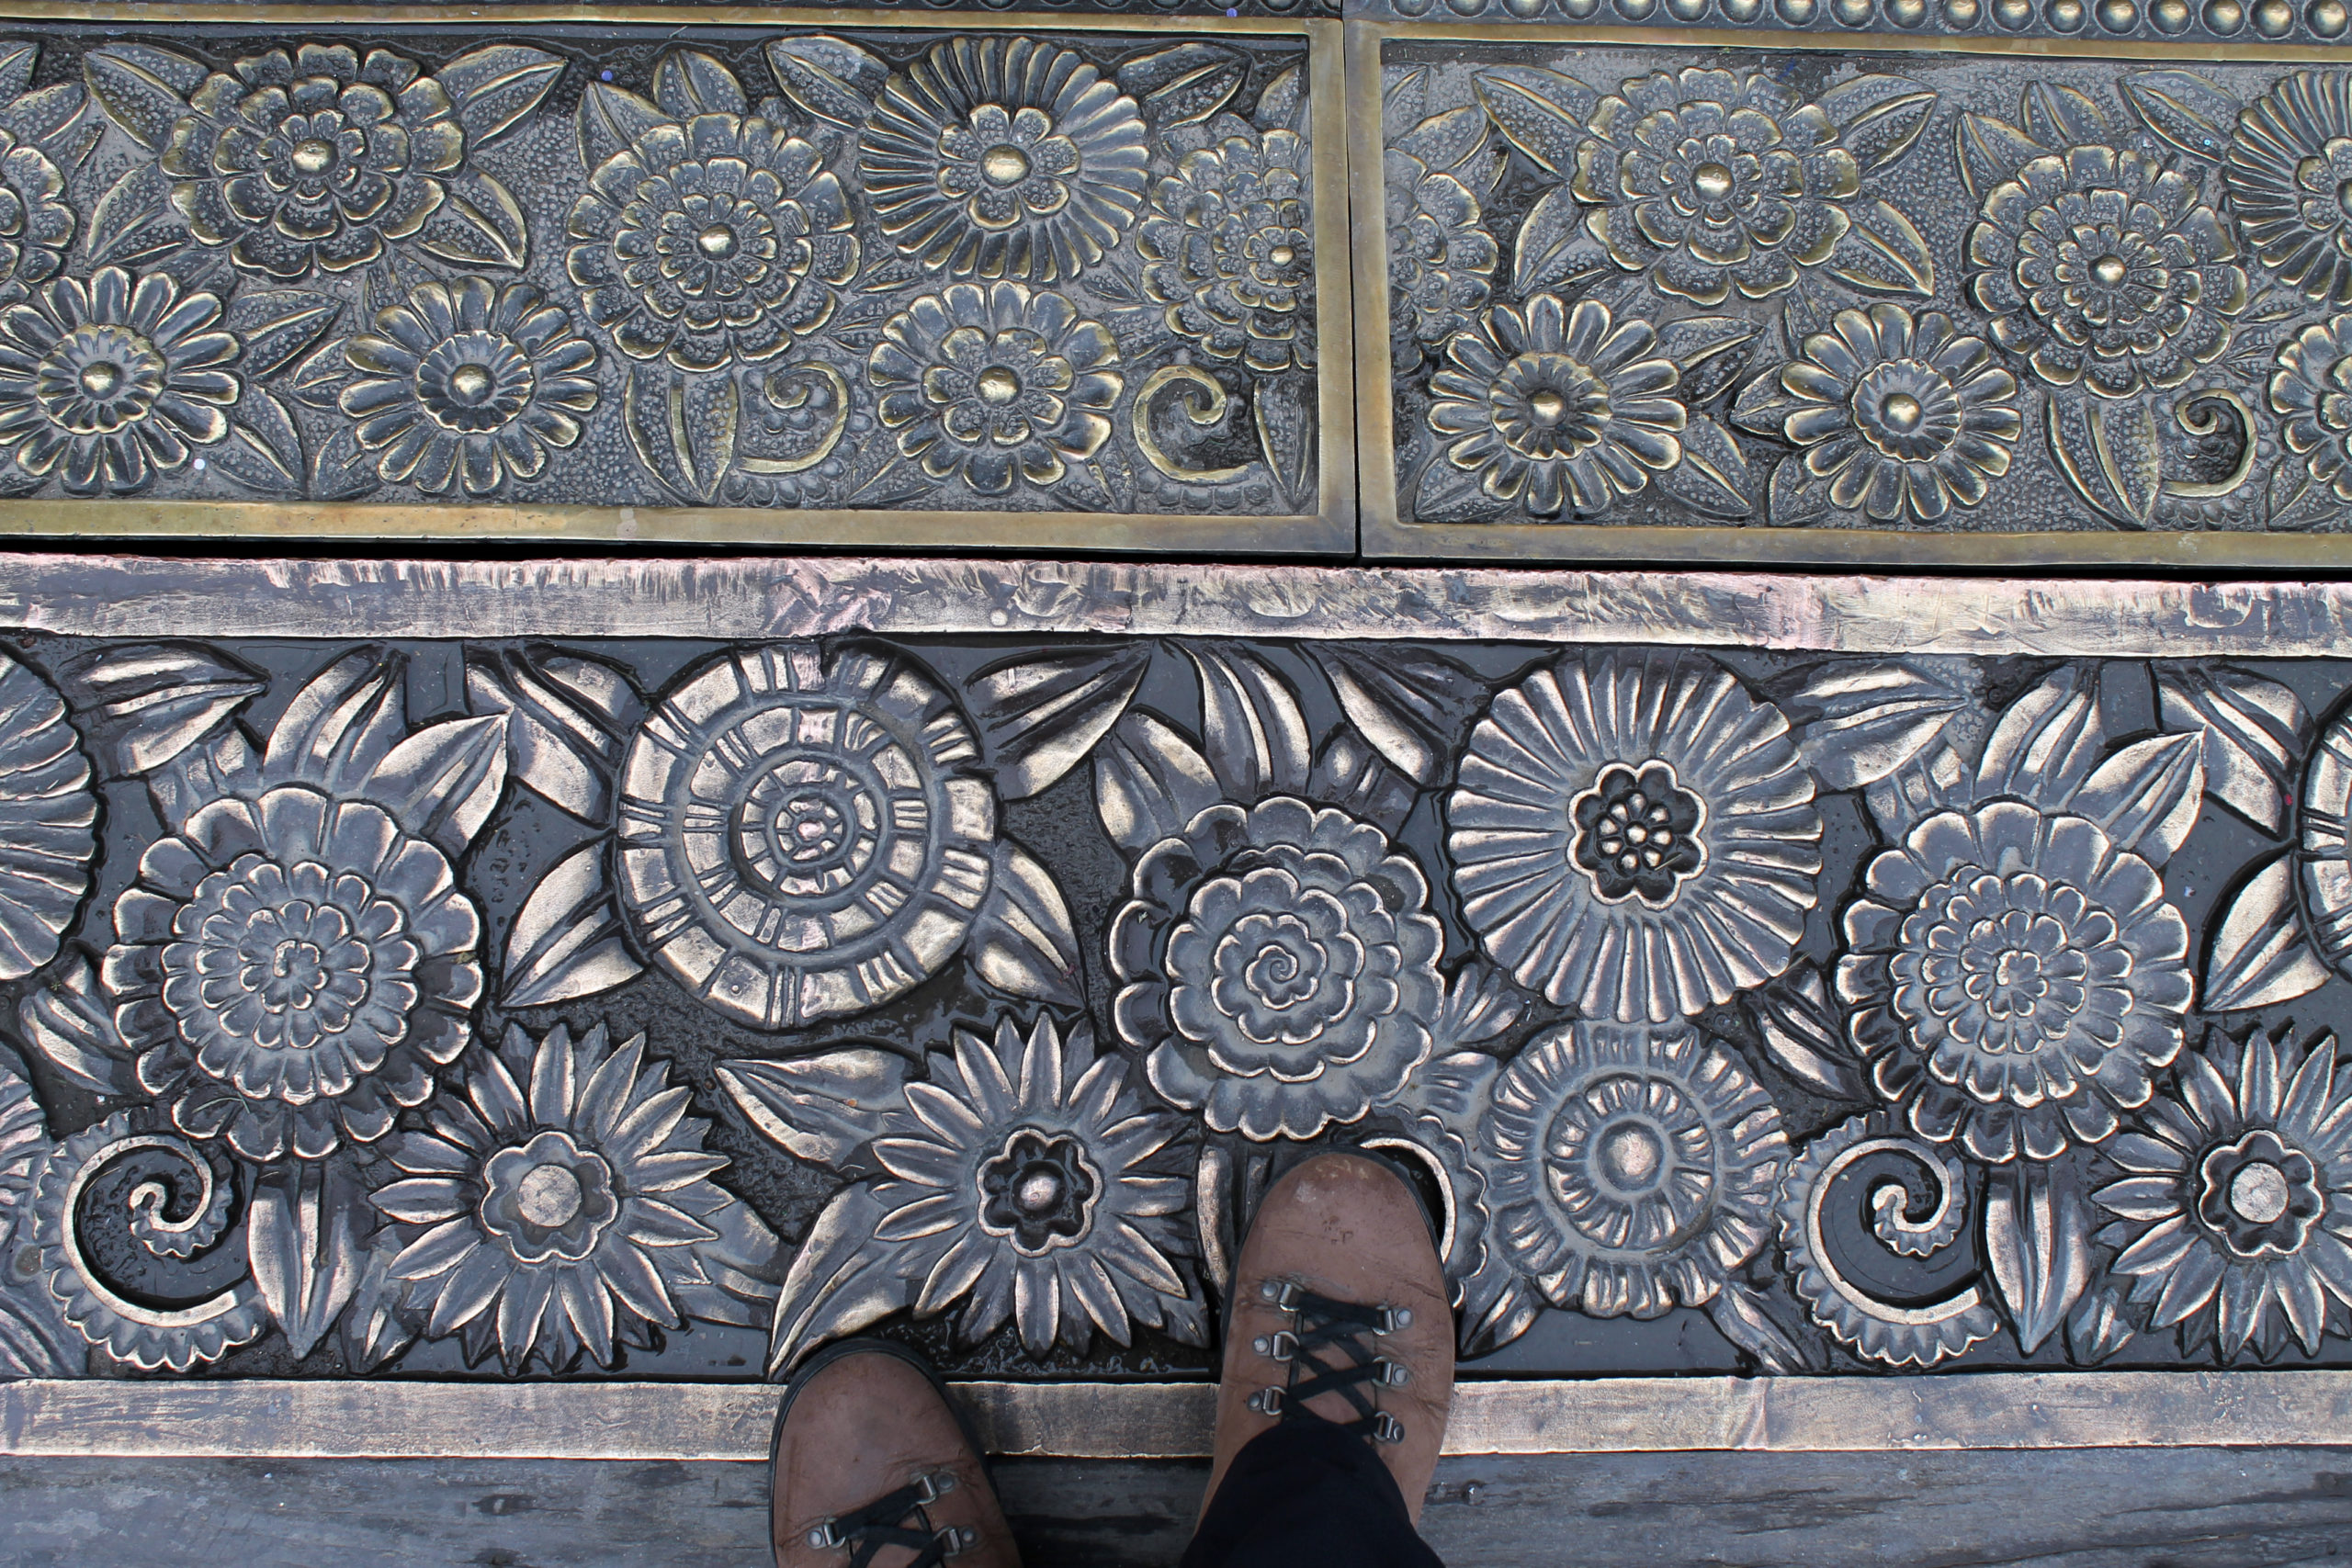 Hiking books viewed from above on ornate floor